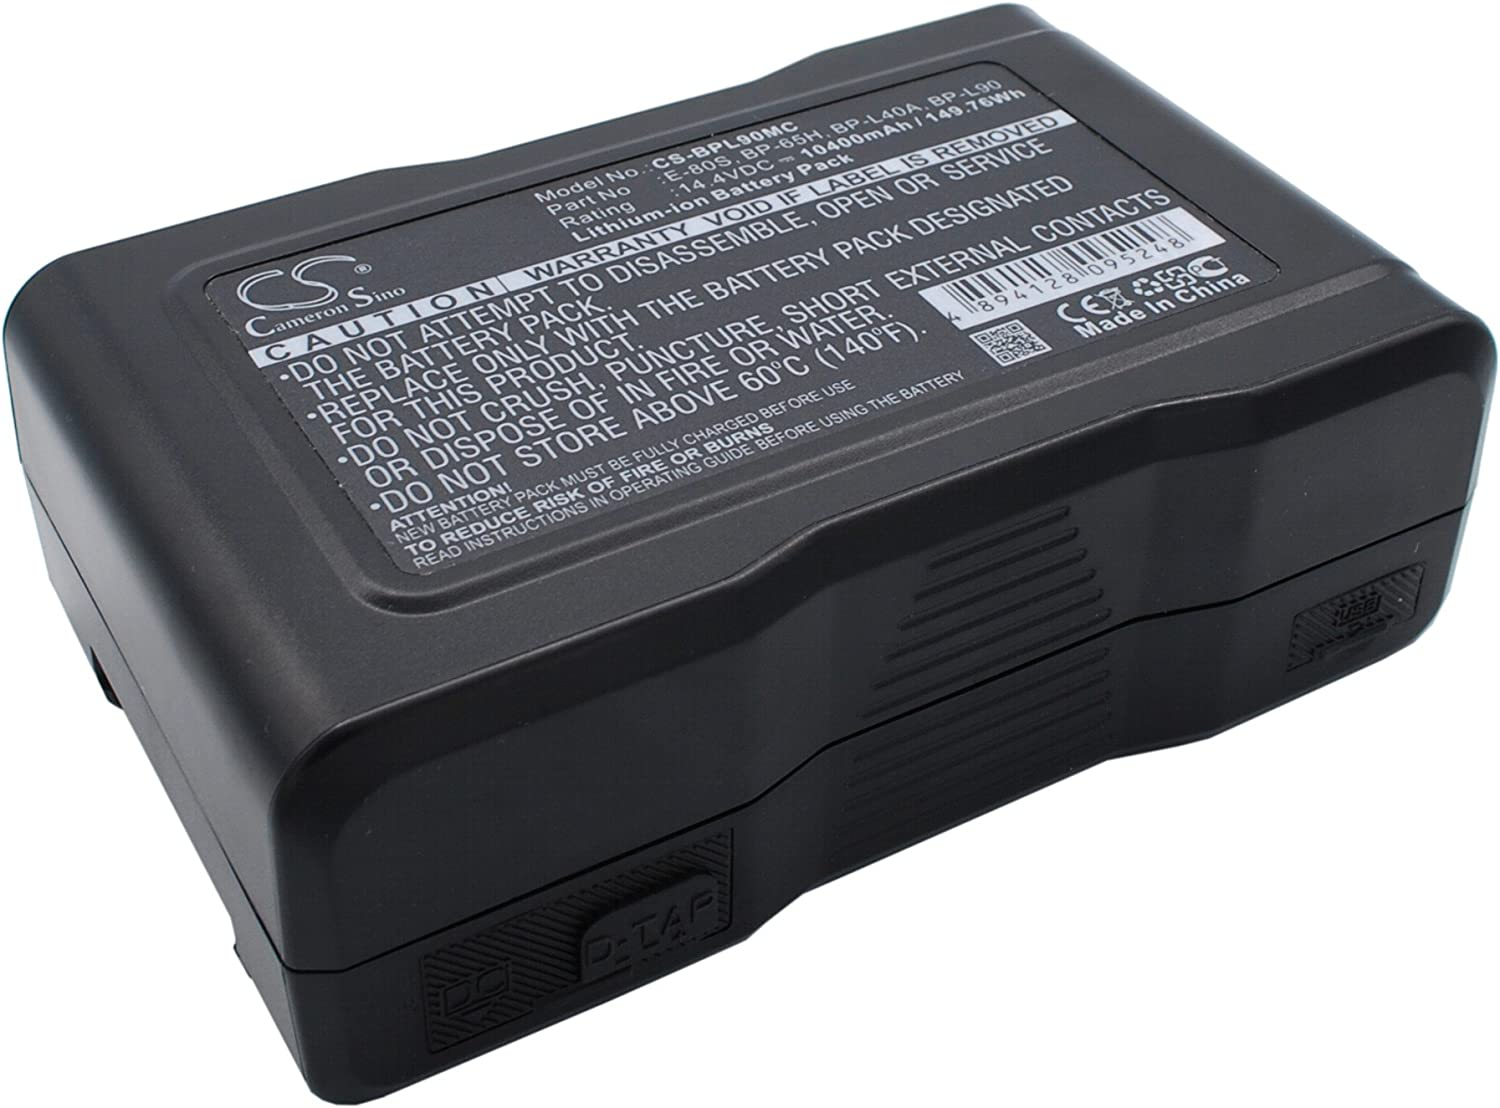 Battery Replacement for Sony BVM-D9H1E Broadcast Monitors BVM-D9H1E Broadcast Monitors BVM-D9H1U Broadcast Monitors BVM-D9H1U Broadcast Monitors BVM-D9H5A Broadcast Monitors